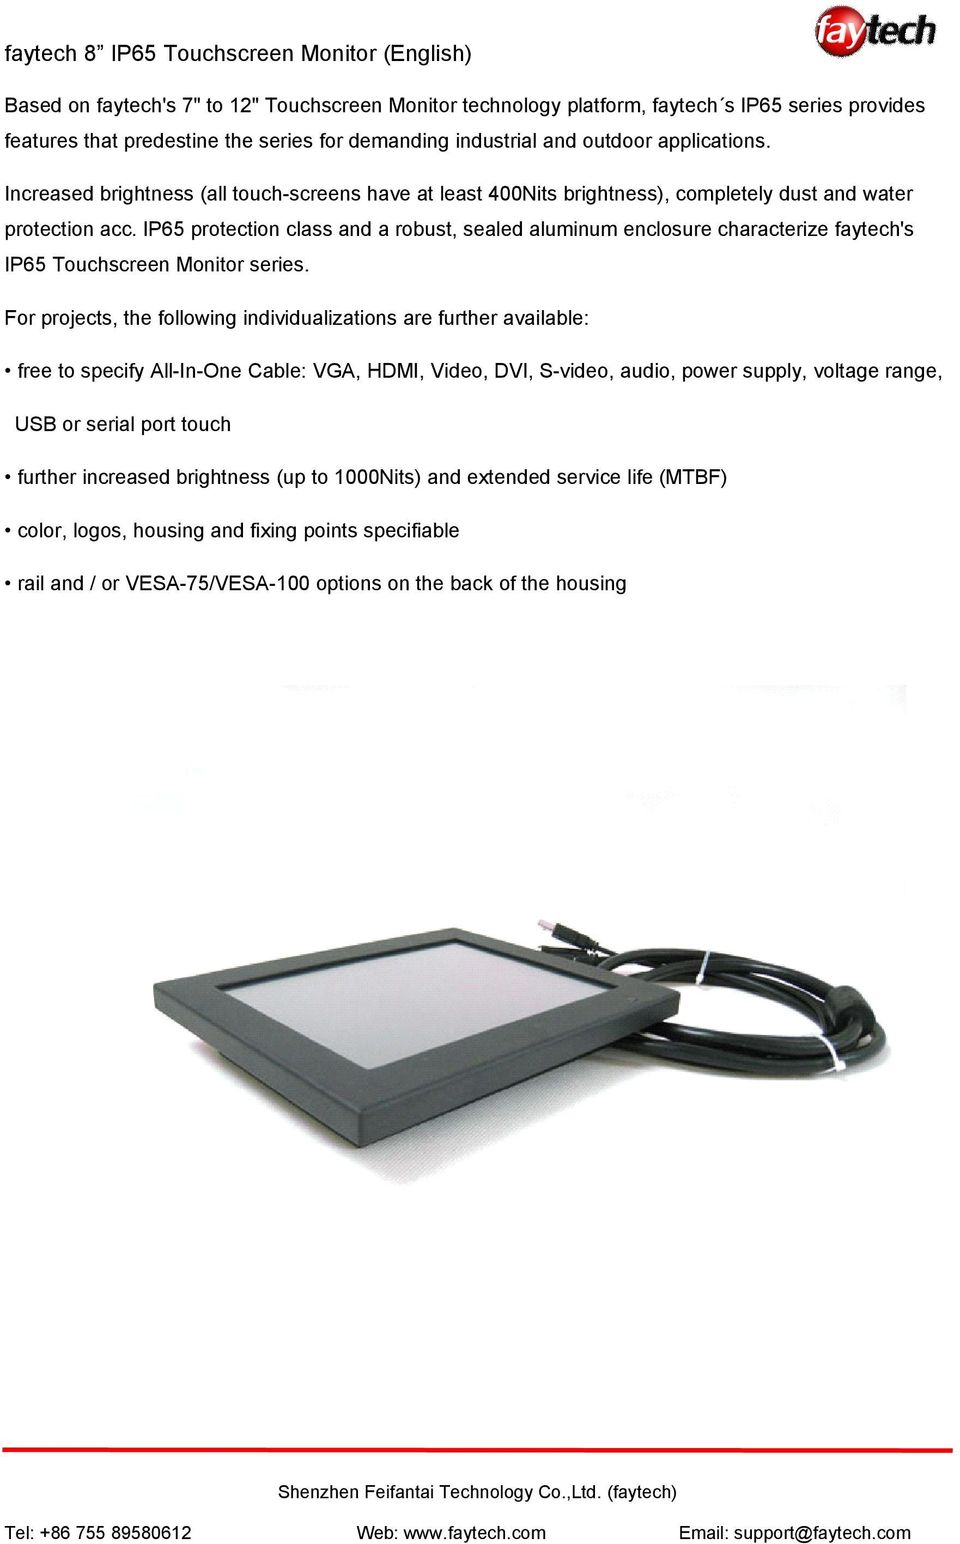 IP65 protection class and a robust, sealed aluminum enclosure characterize faytech's IP65 Touchscreen Monitor series.